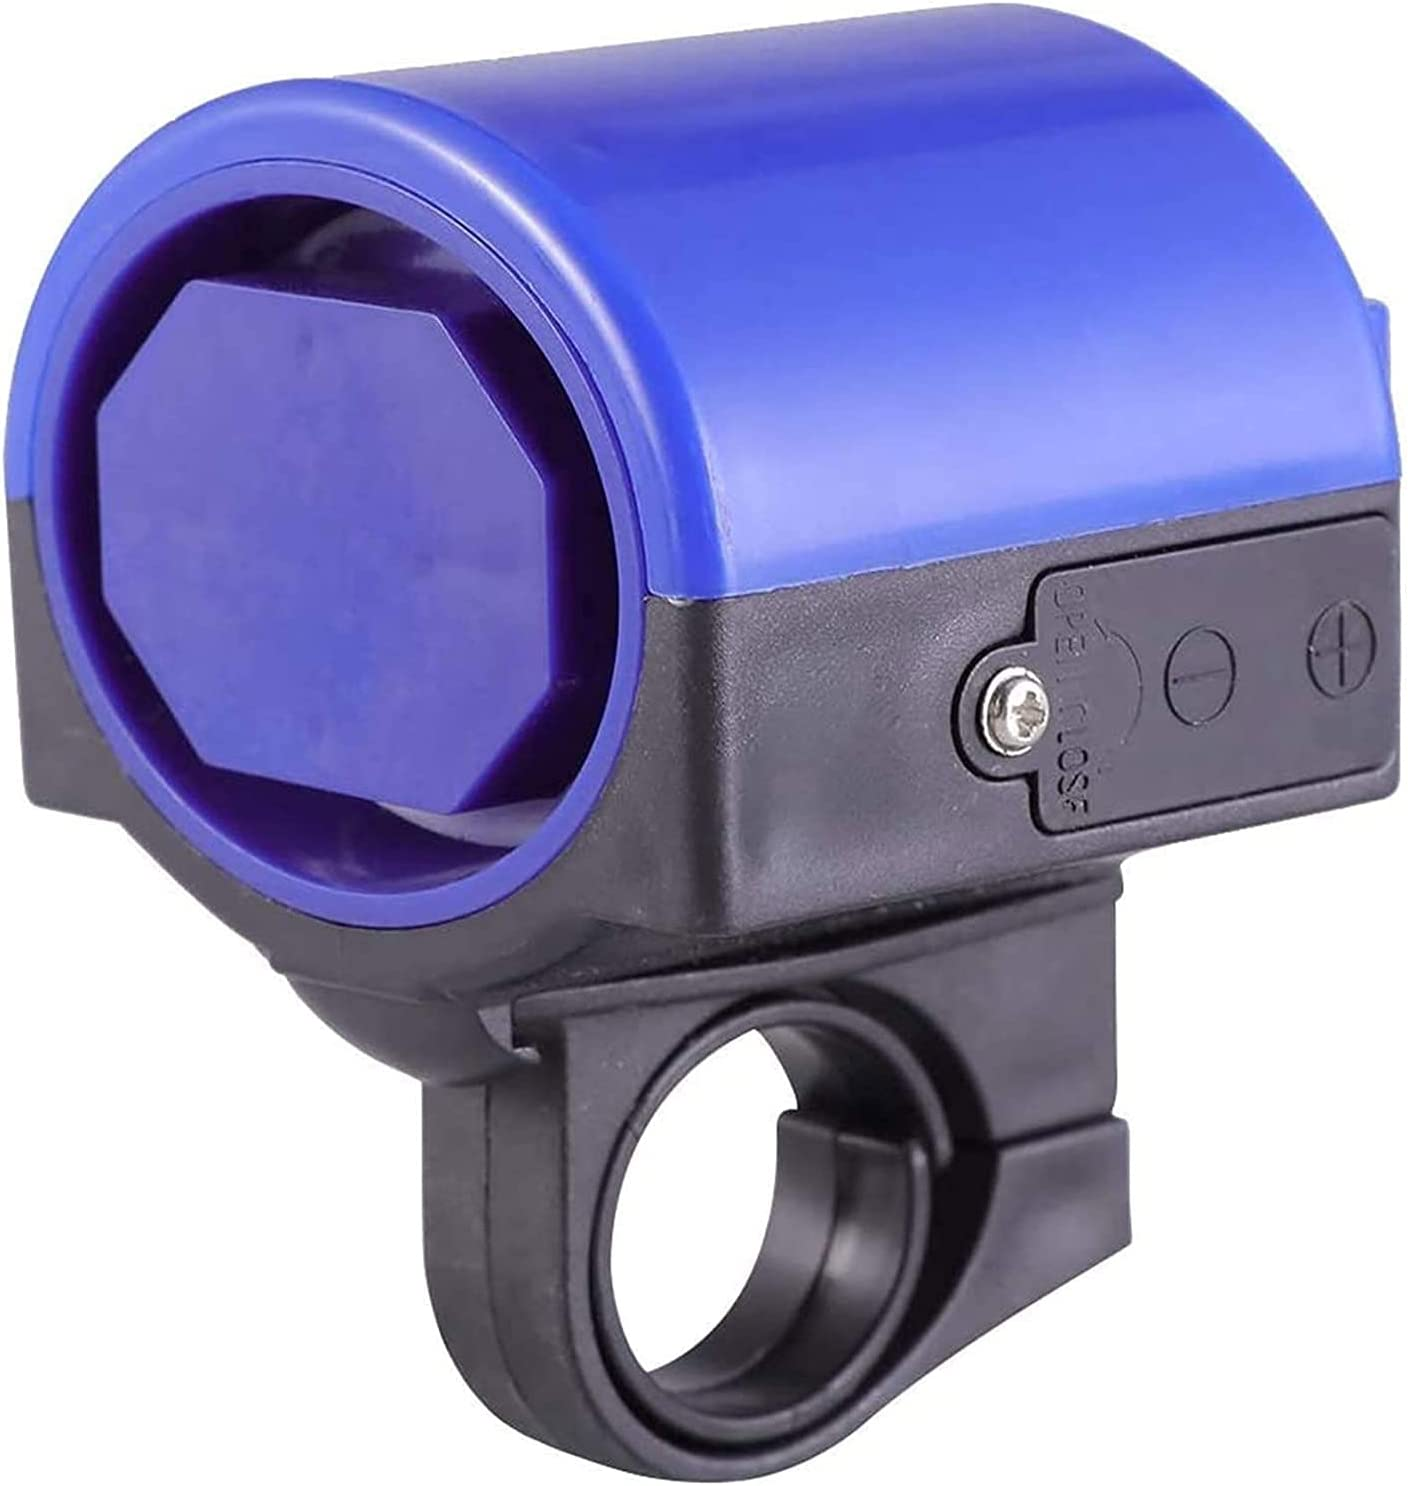 Blacklight Bicycle Riding Electronic Max 58% OFF Horn Mountain Rapid rise Bell Bike Bic